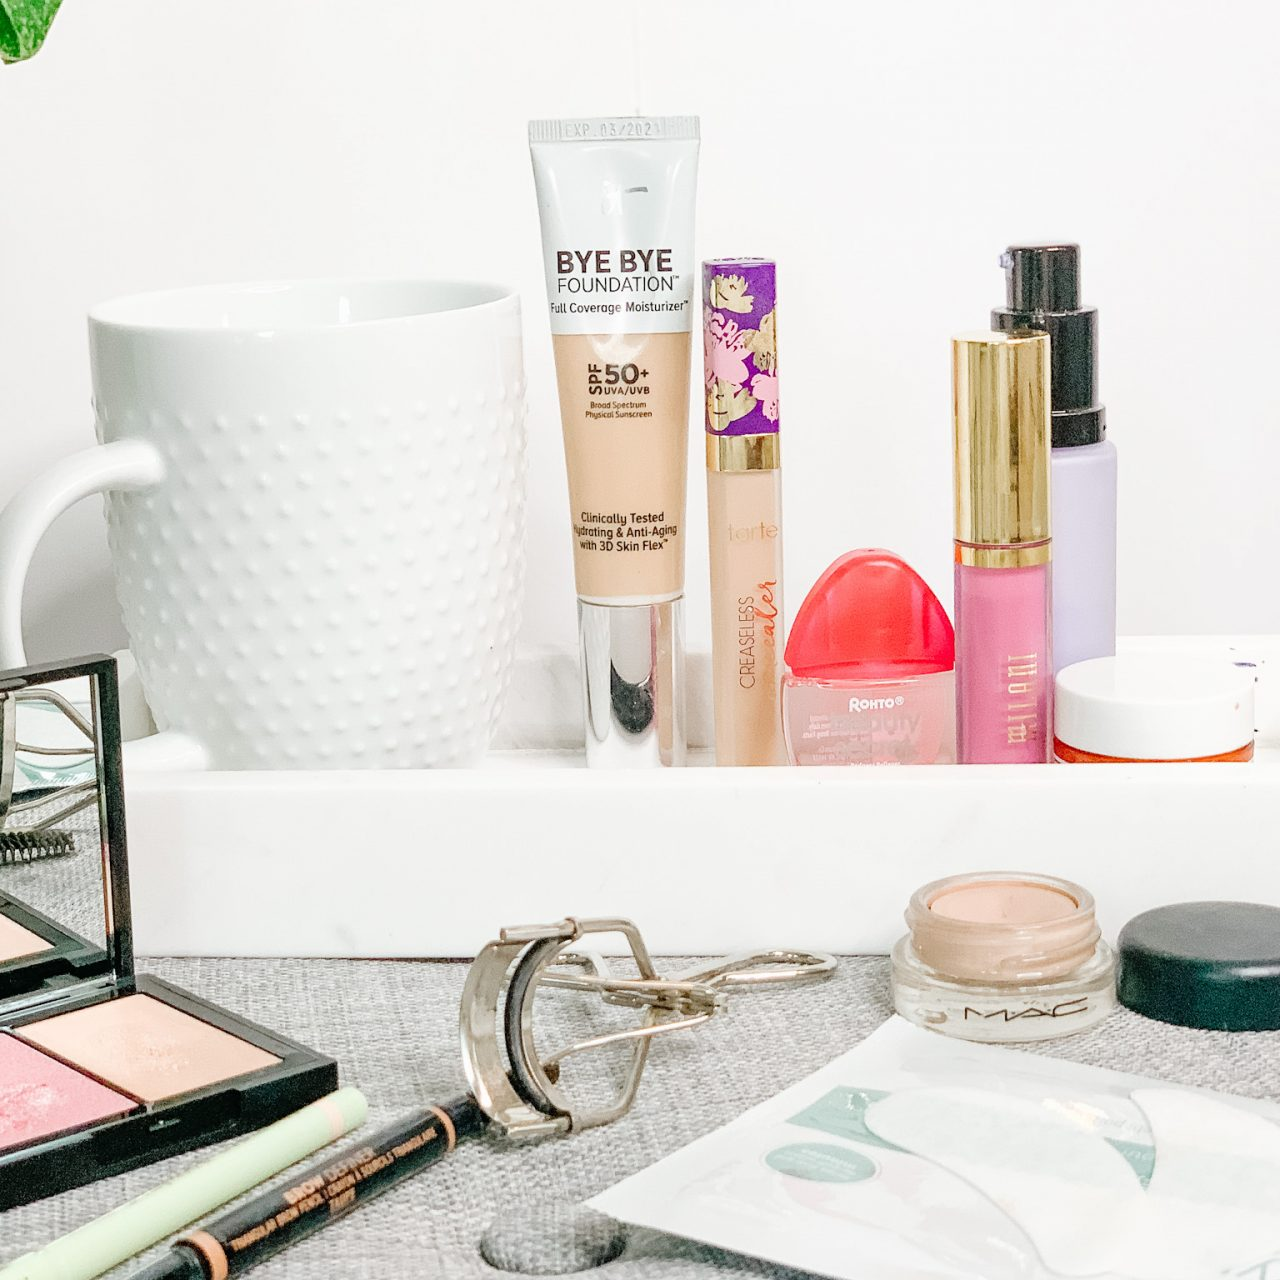 THE BEST MAKEUP TIPS FOR LOOKING LESS TIRED